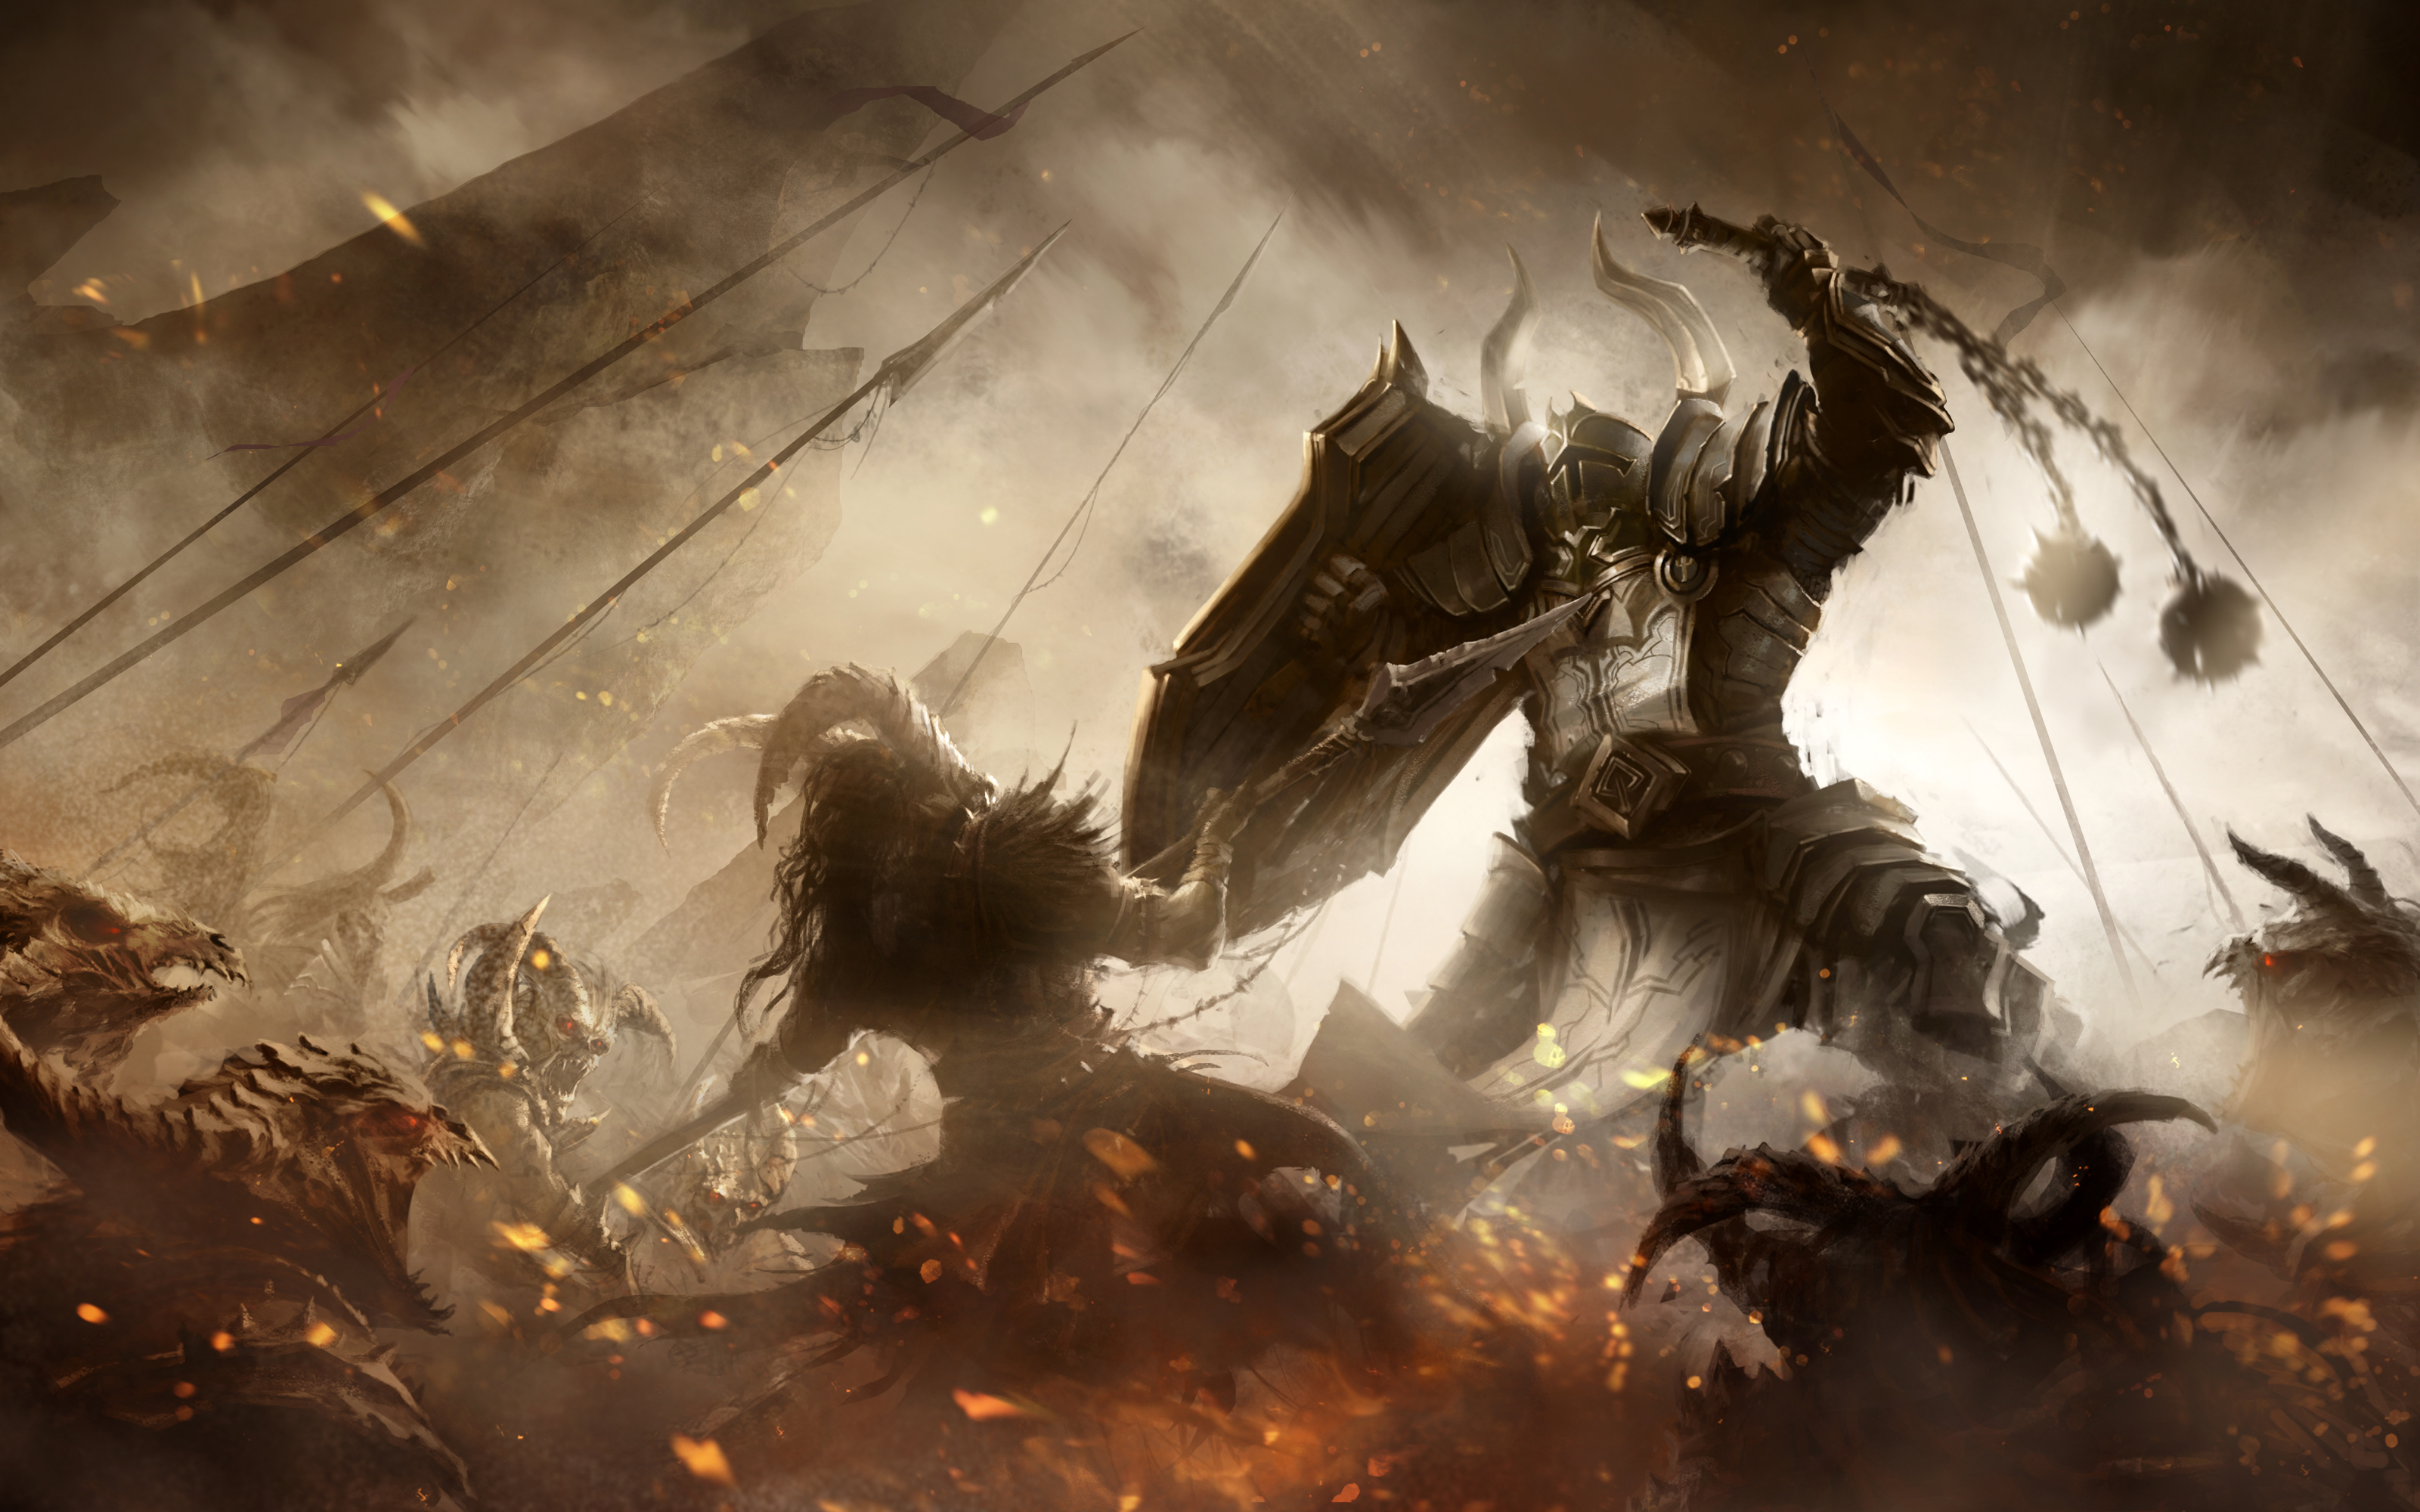 Diablo 3 Crusader Wallpaper 1920x1080 Diablo 3 Season 9 Crus...